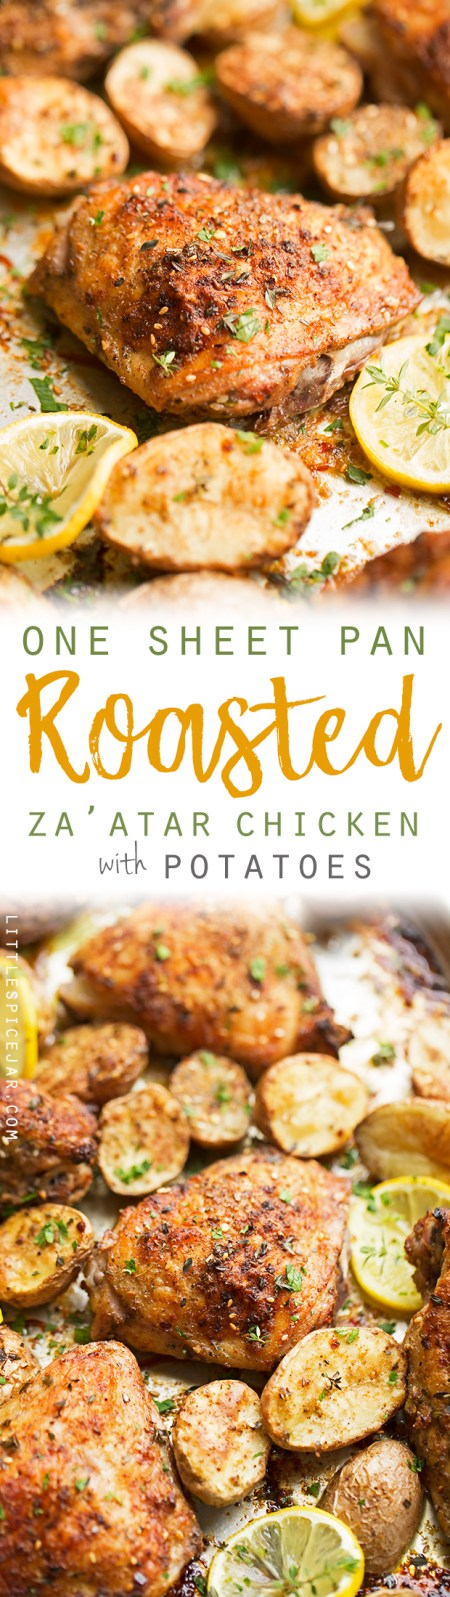 One-Sheet-Pan-Roasted-Za'atar-Chickena-and-Potatoes-6